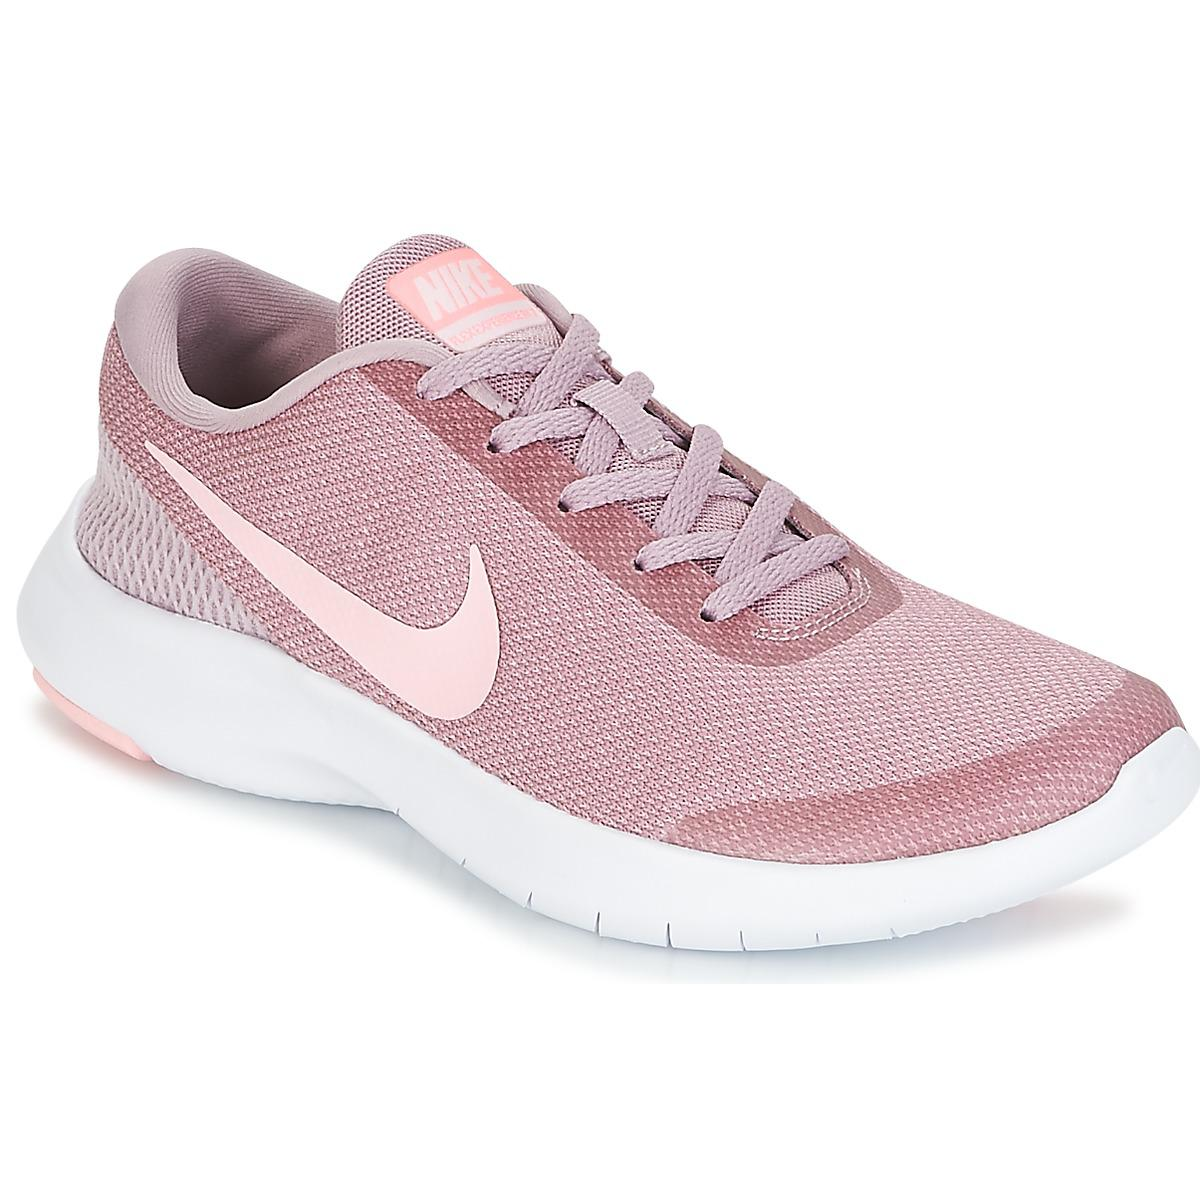 f4c7a67b65f2 Nike Flex Experience Run 7 W Women s Running Trainers In Pink in ...